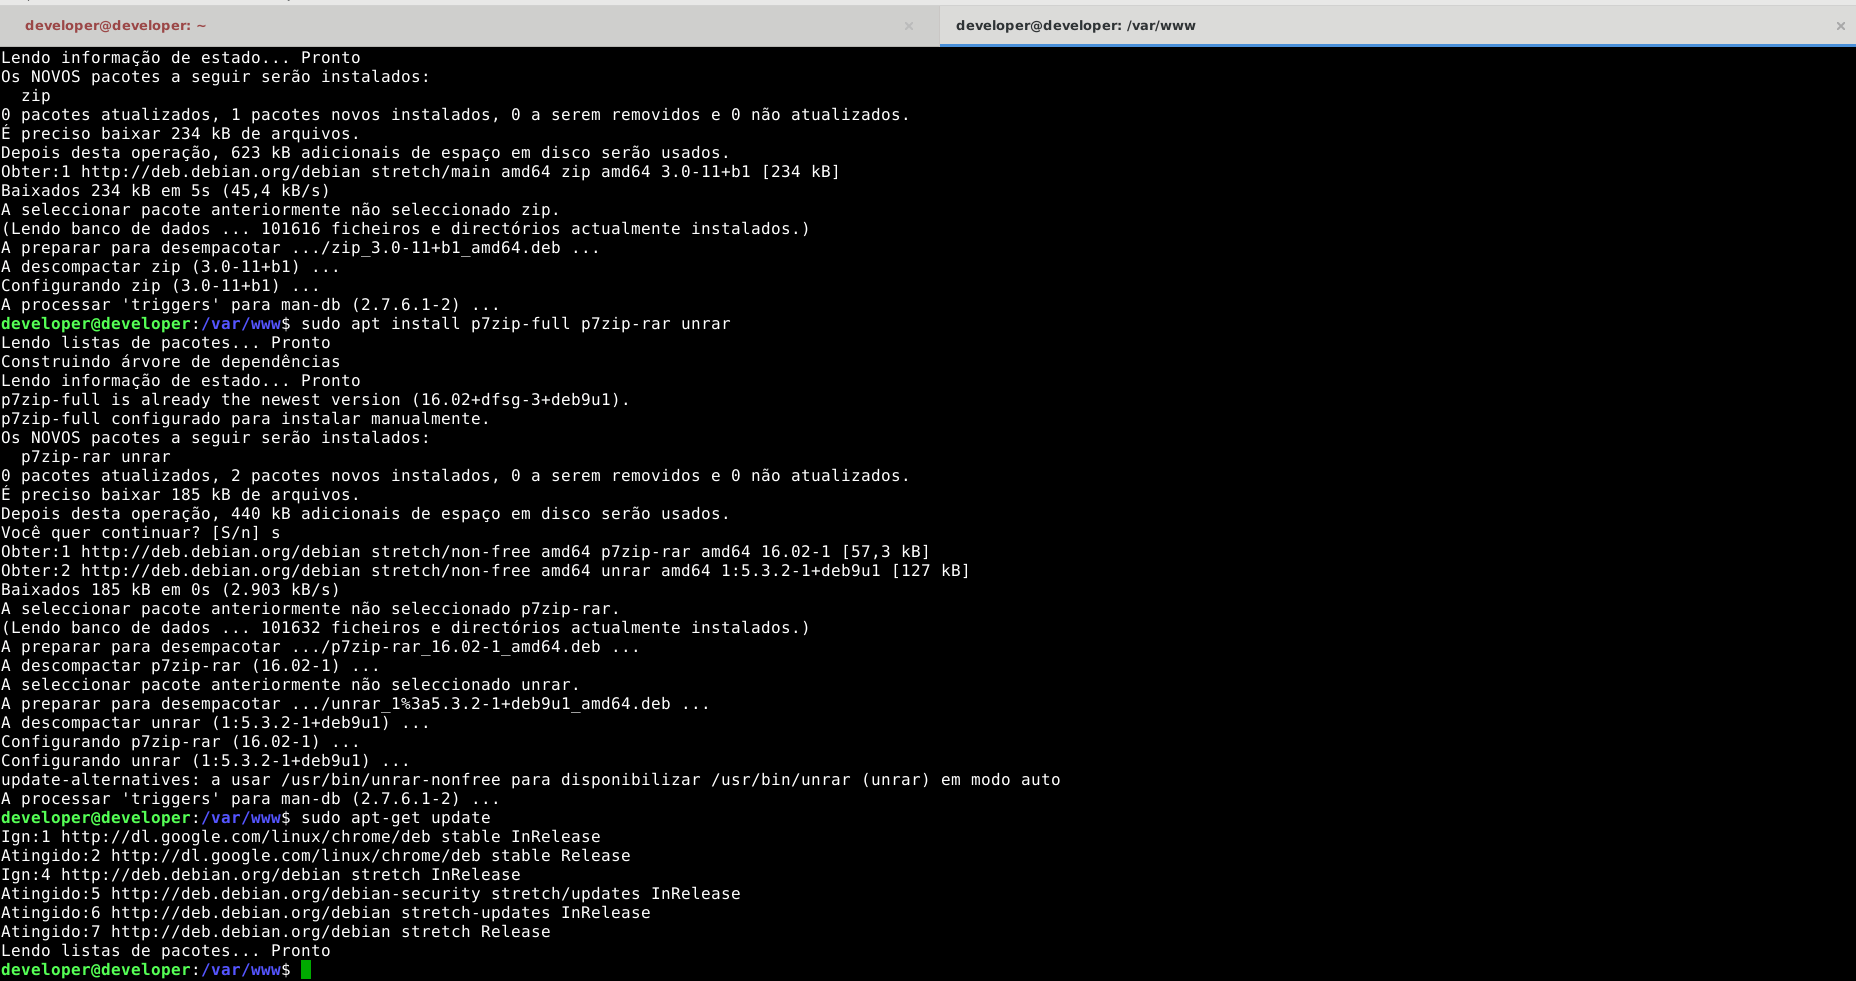 Como instalar rar no Debian 9 (Stretch)